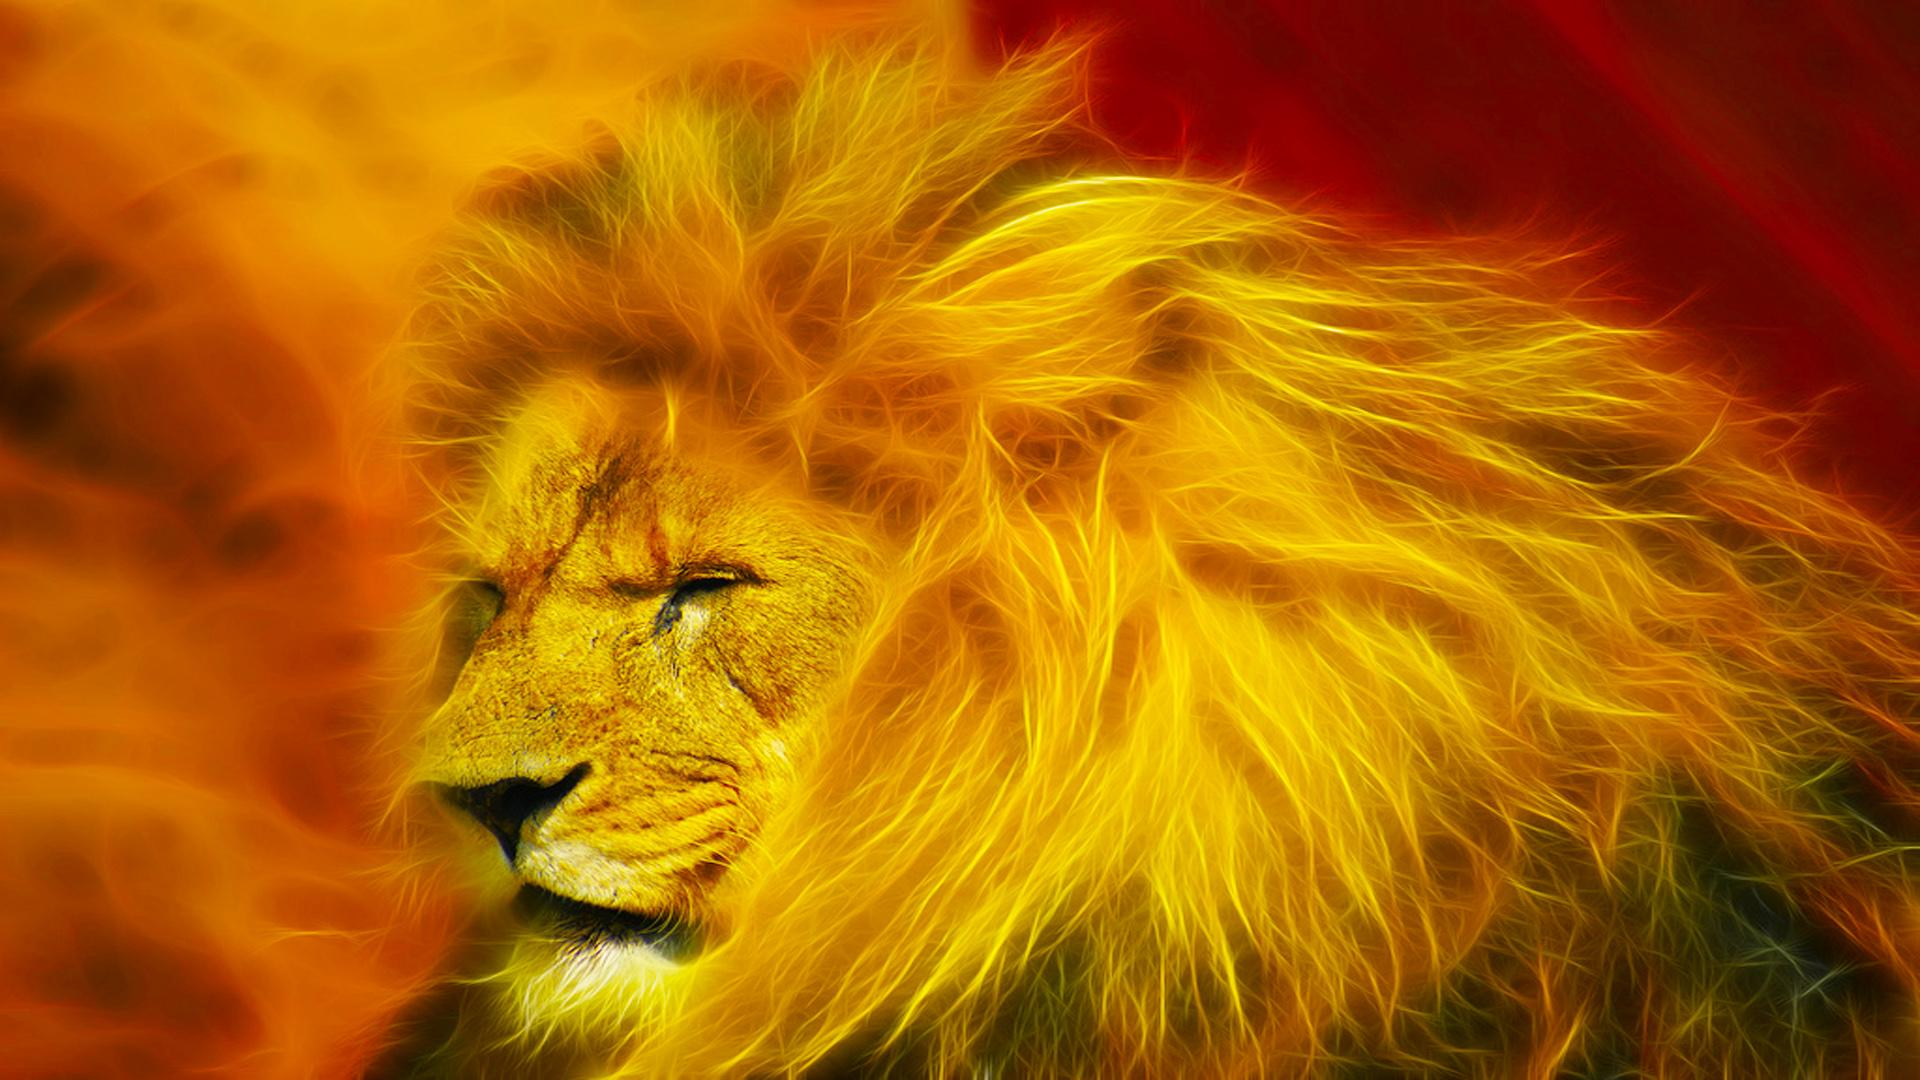 HD Lion Wallpapers 032